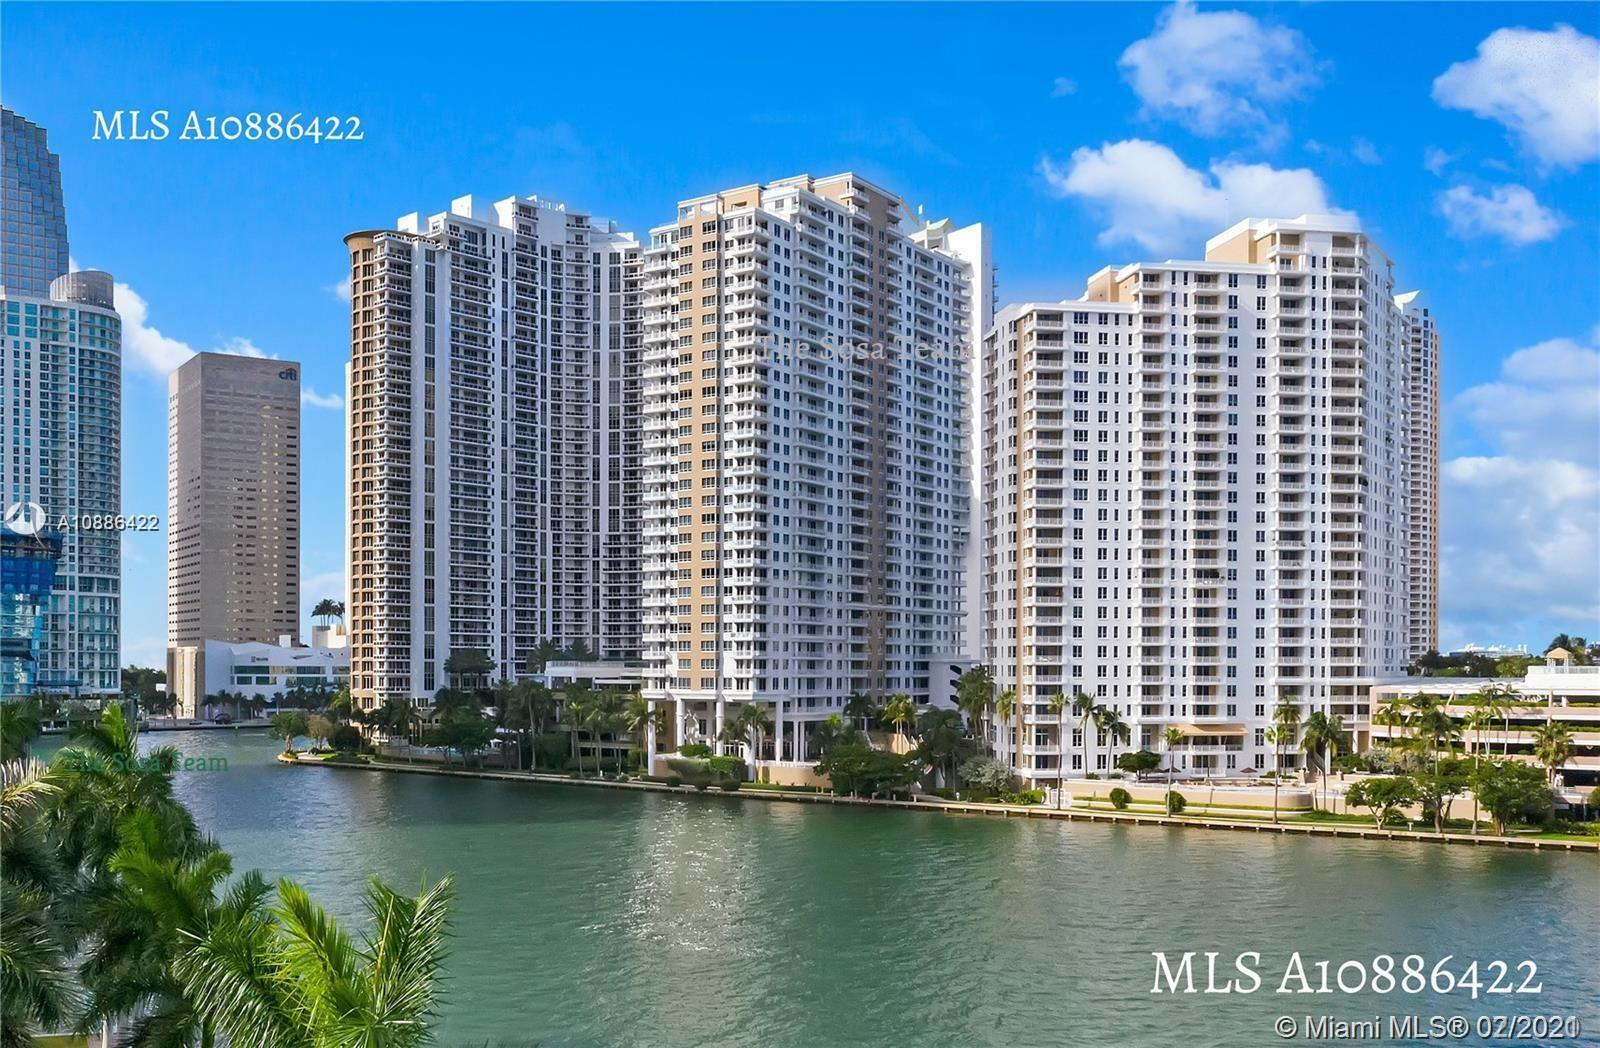 Courts Brickell Key #2510 - 801 Brickell Key Blvd #2510, Miami, FL 33131